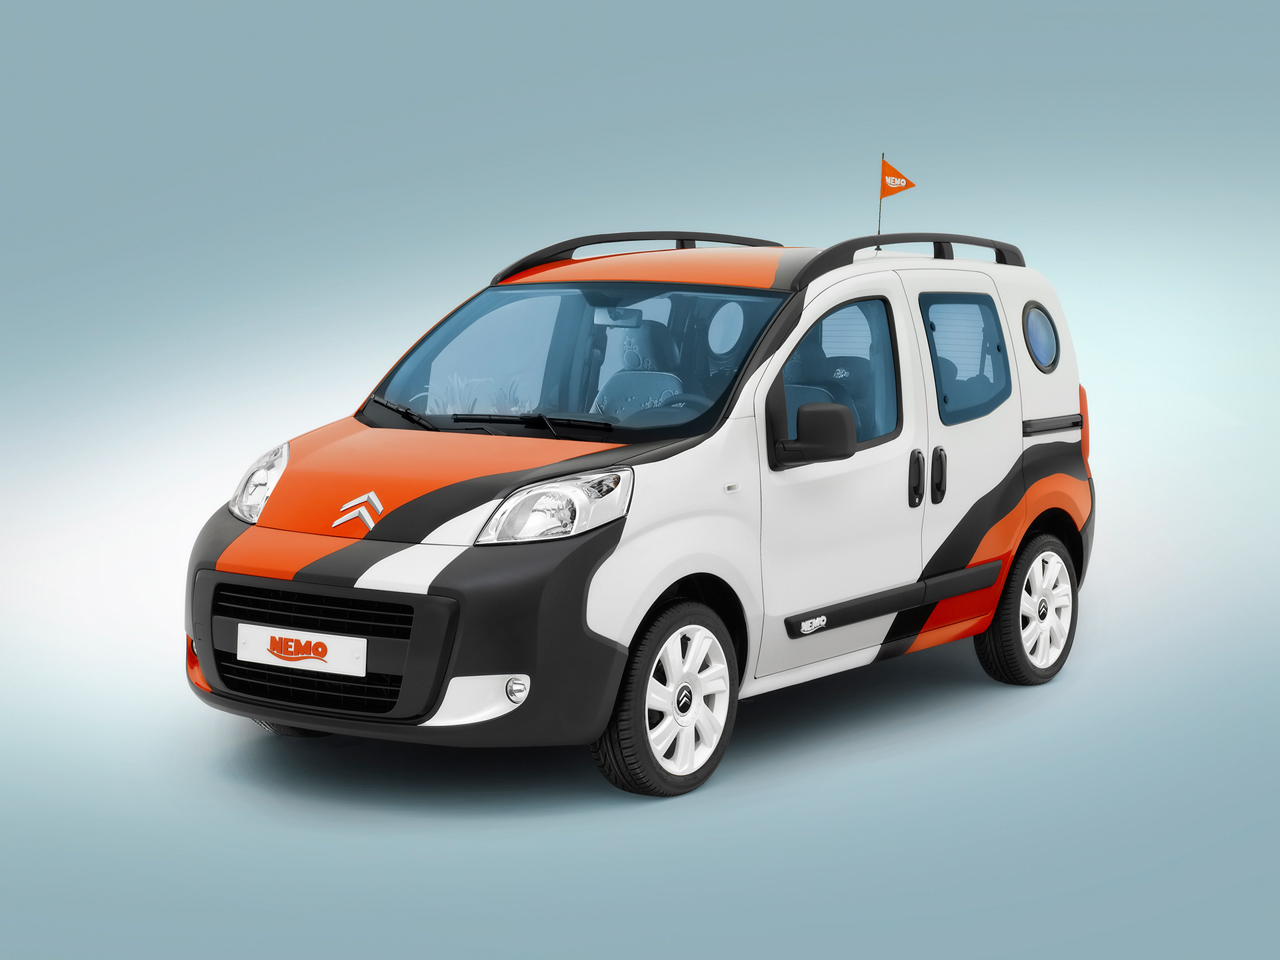 Citroen Nemo photo 14